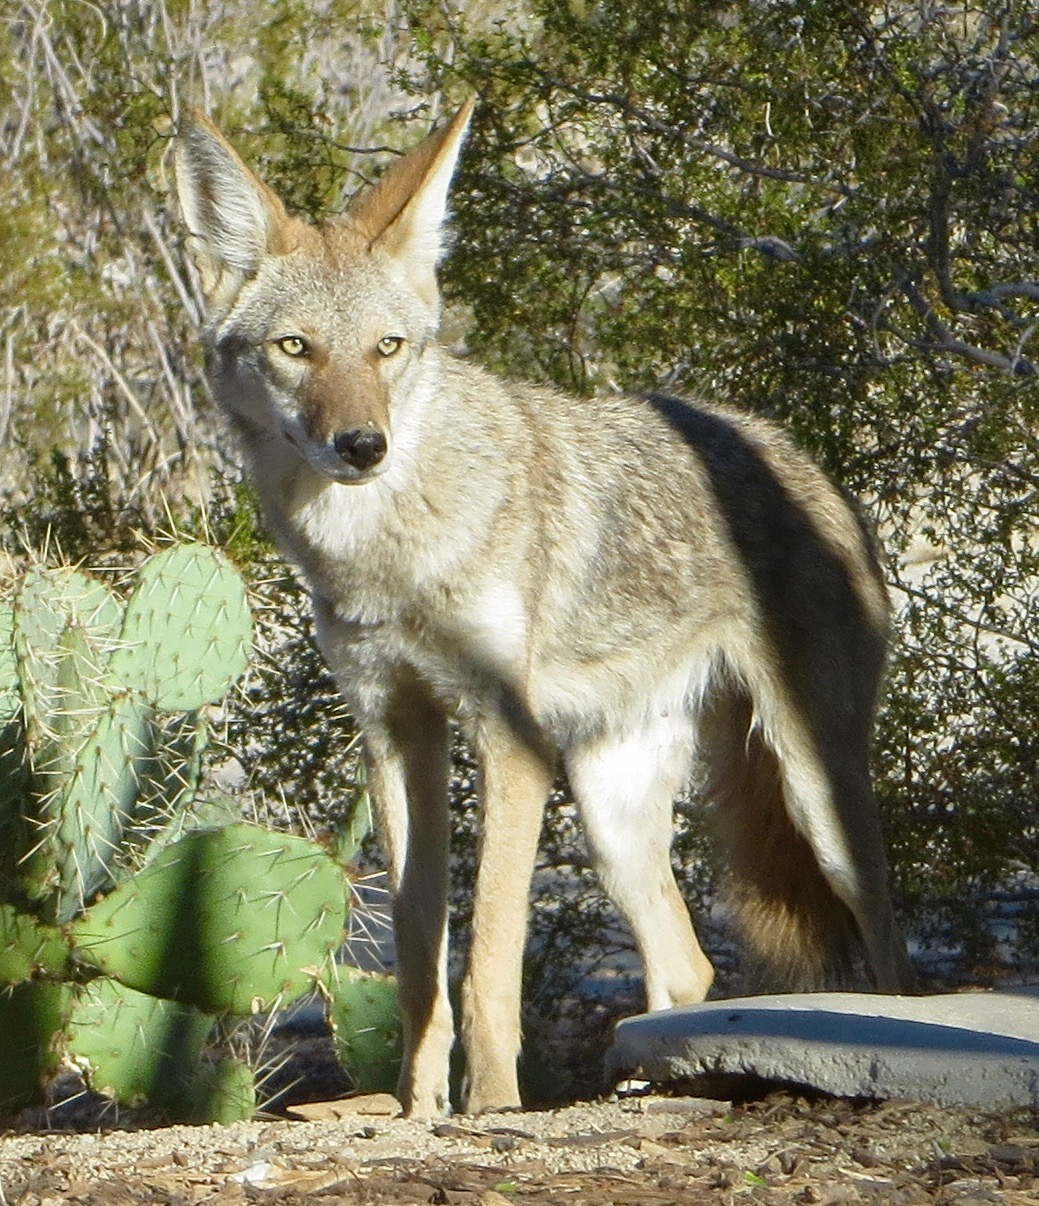 coyote_in_yard.jpg